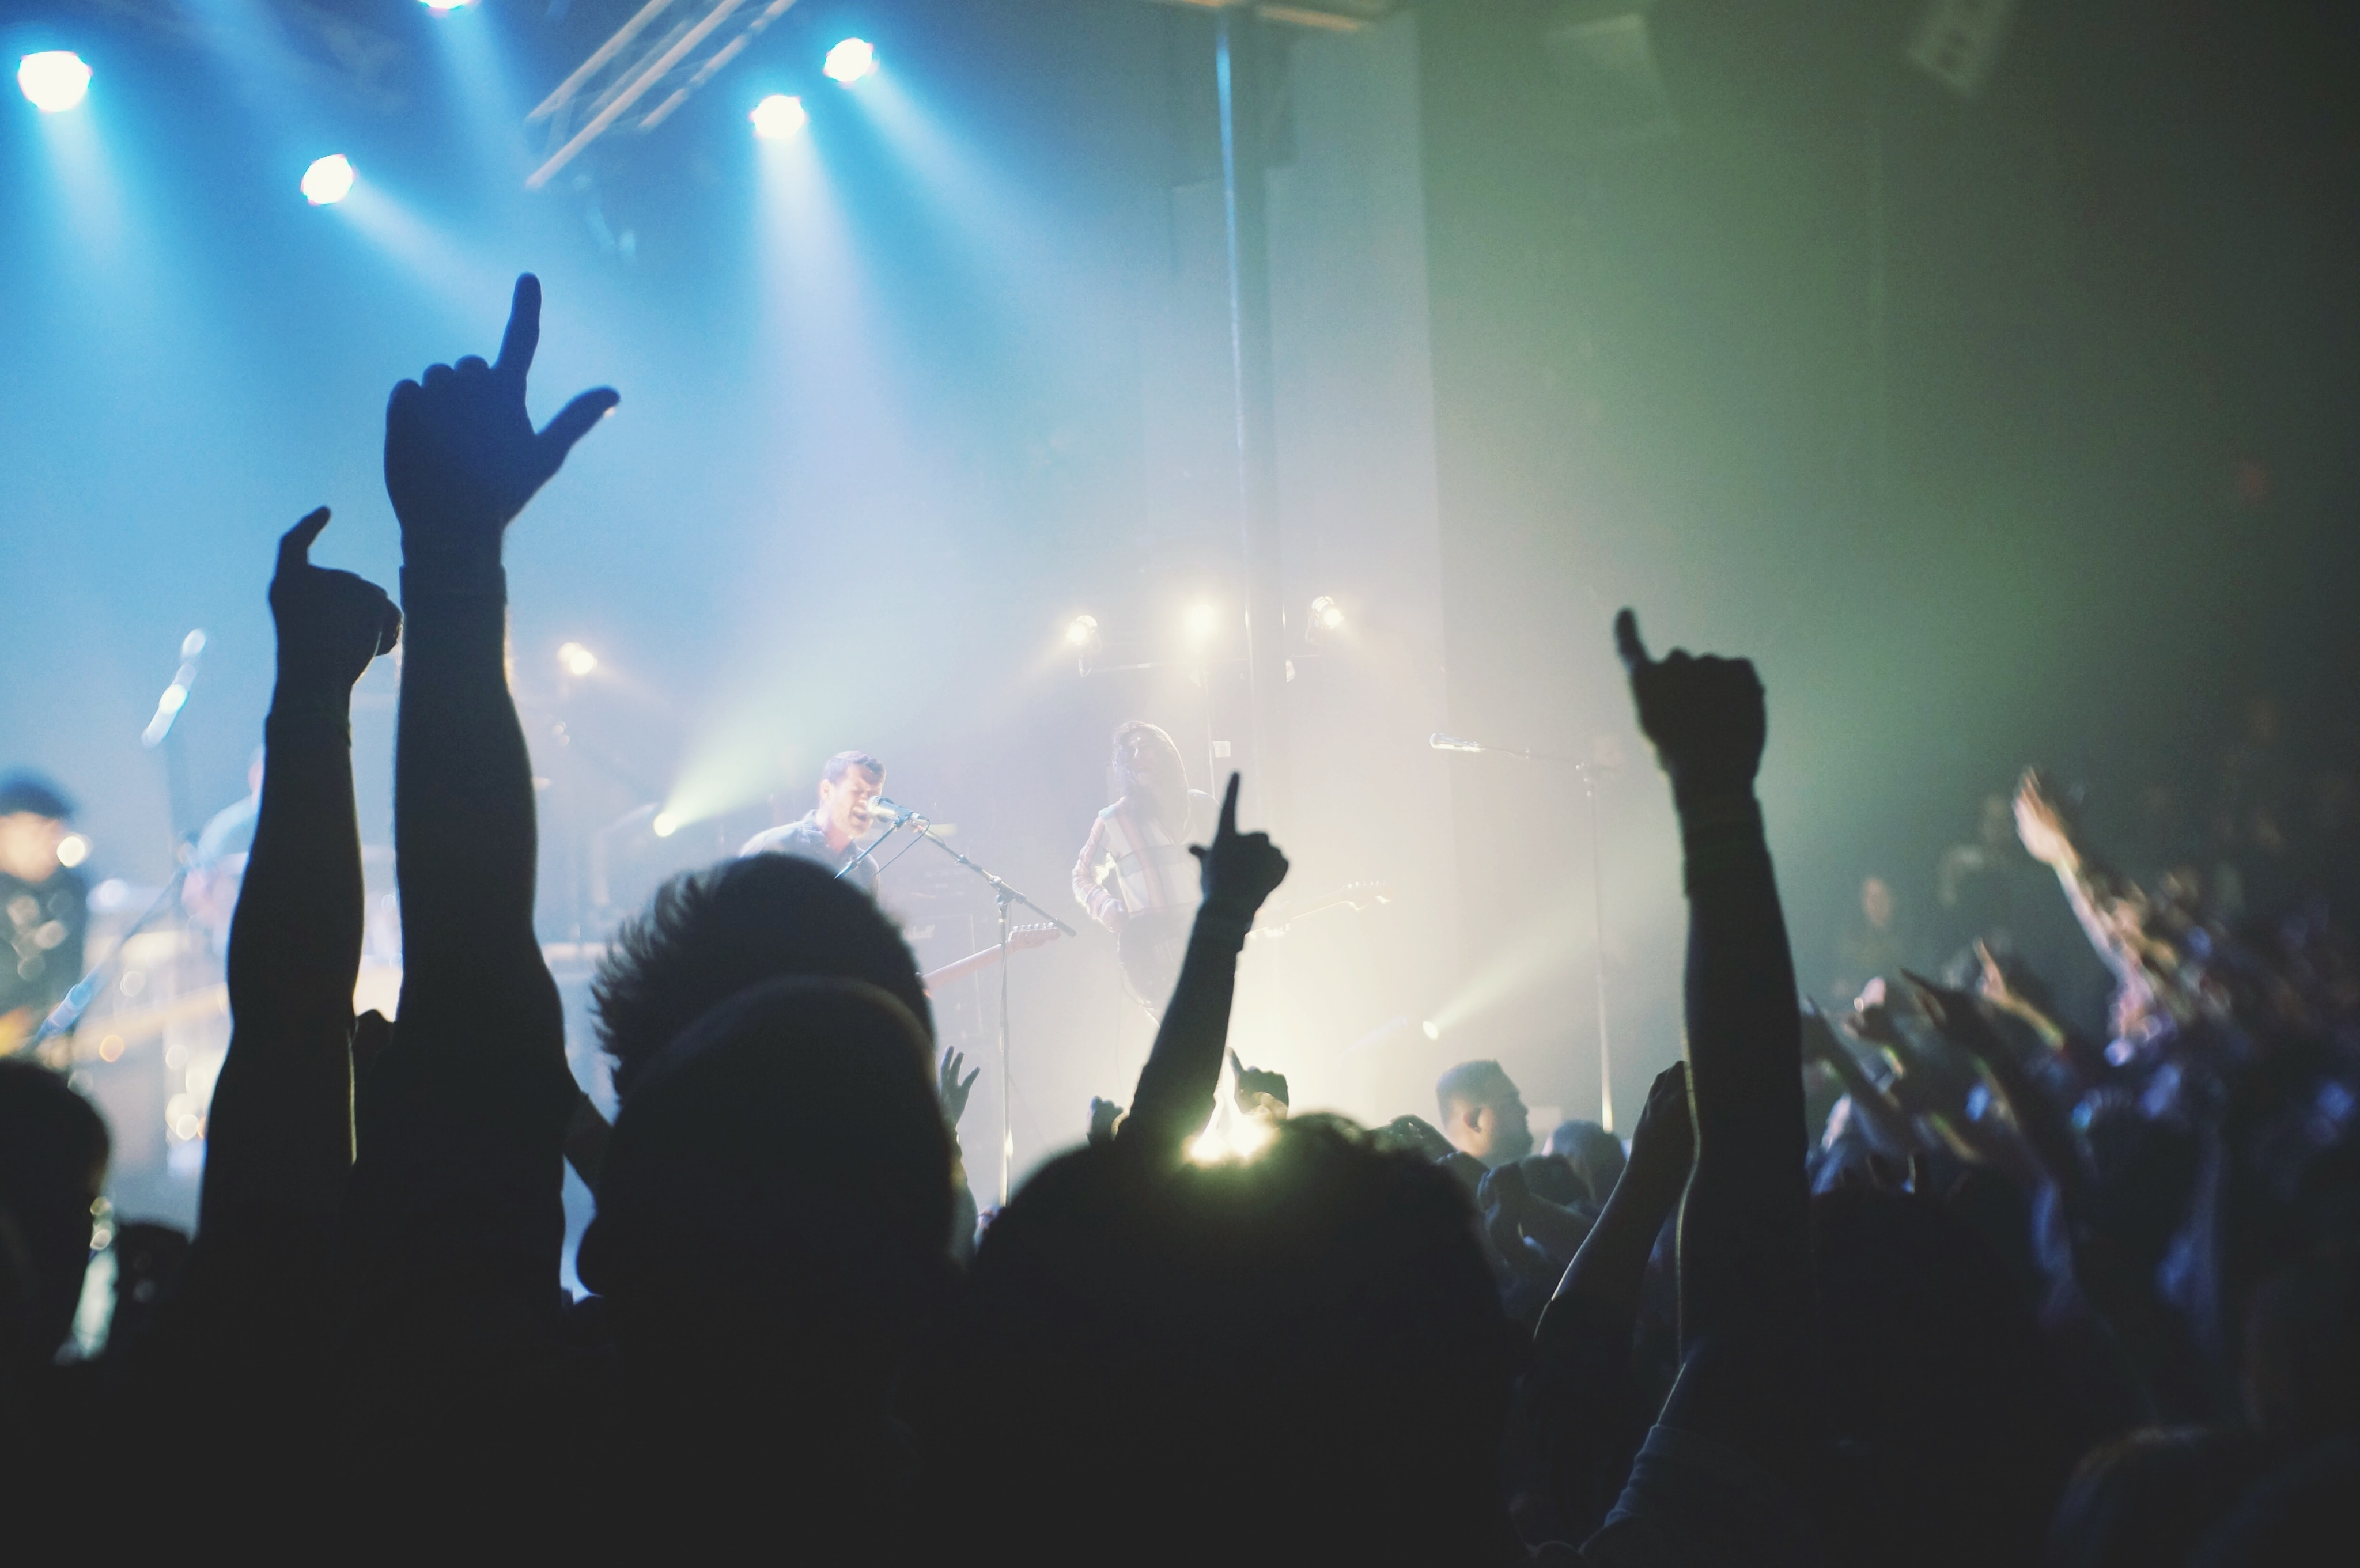 Silhouettes of concert goers lifting up their hands with a rock band performing on stage